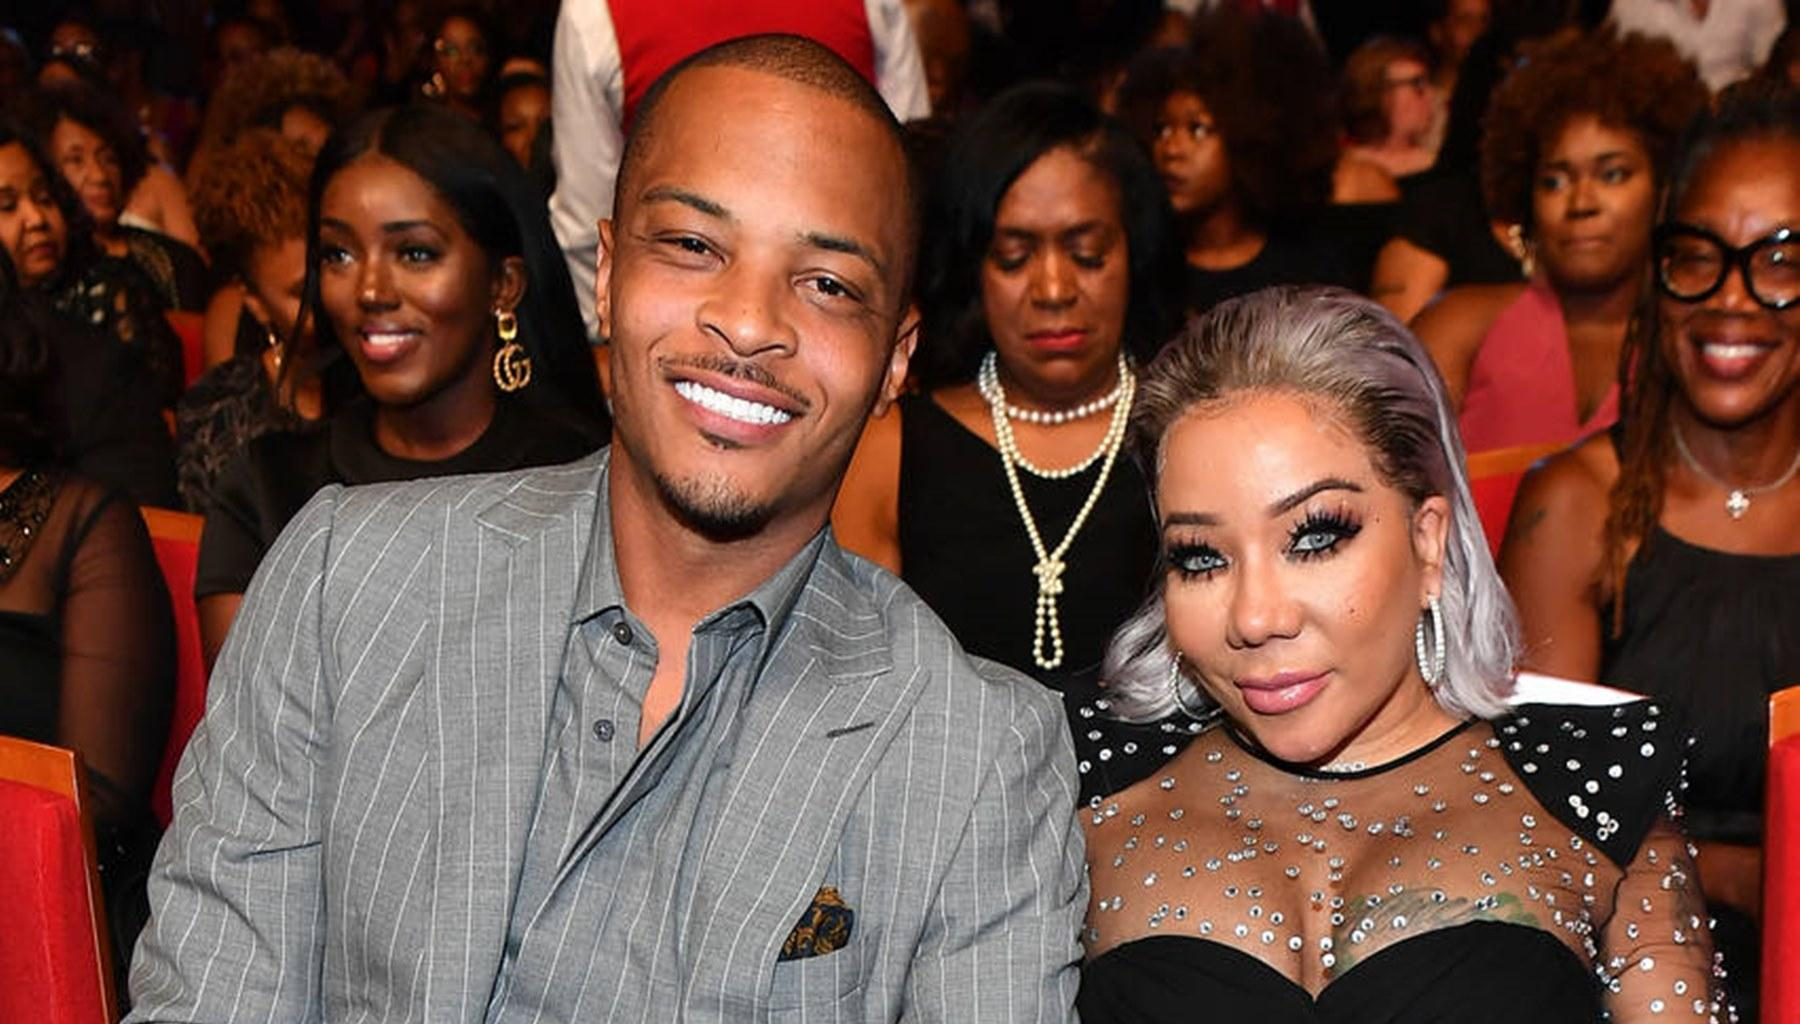 Tiny Harris Hints That She Might Be Pregnant In Romantic Photos With T.I.